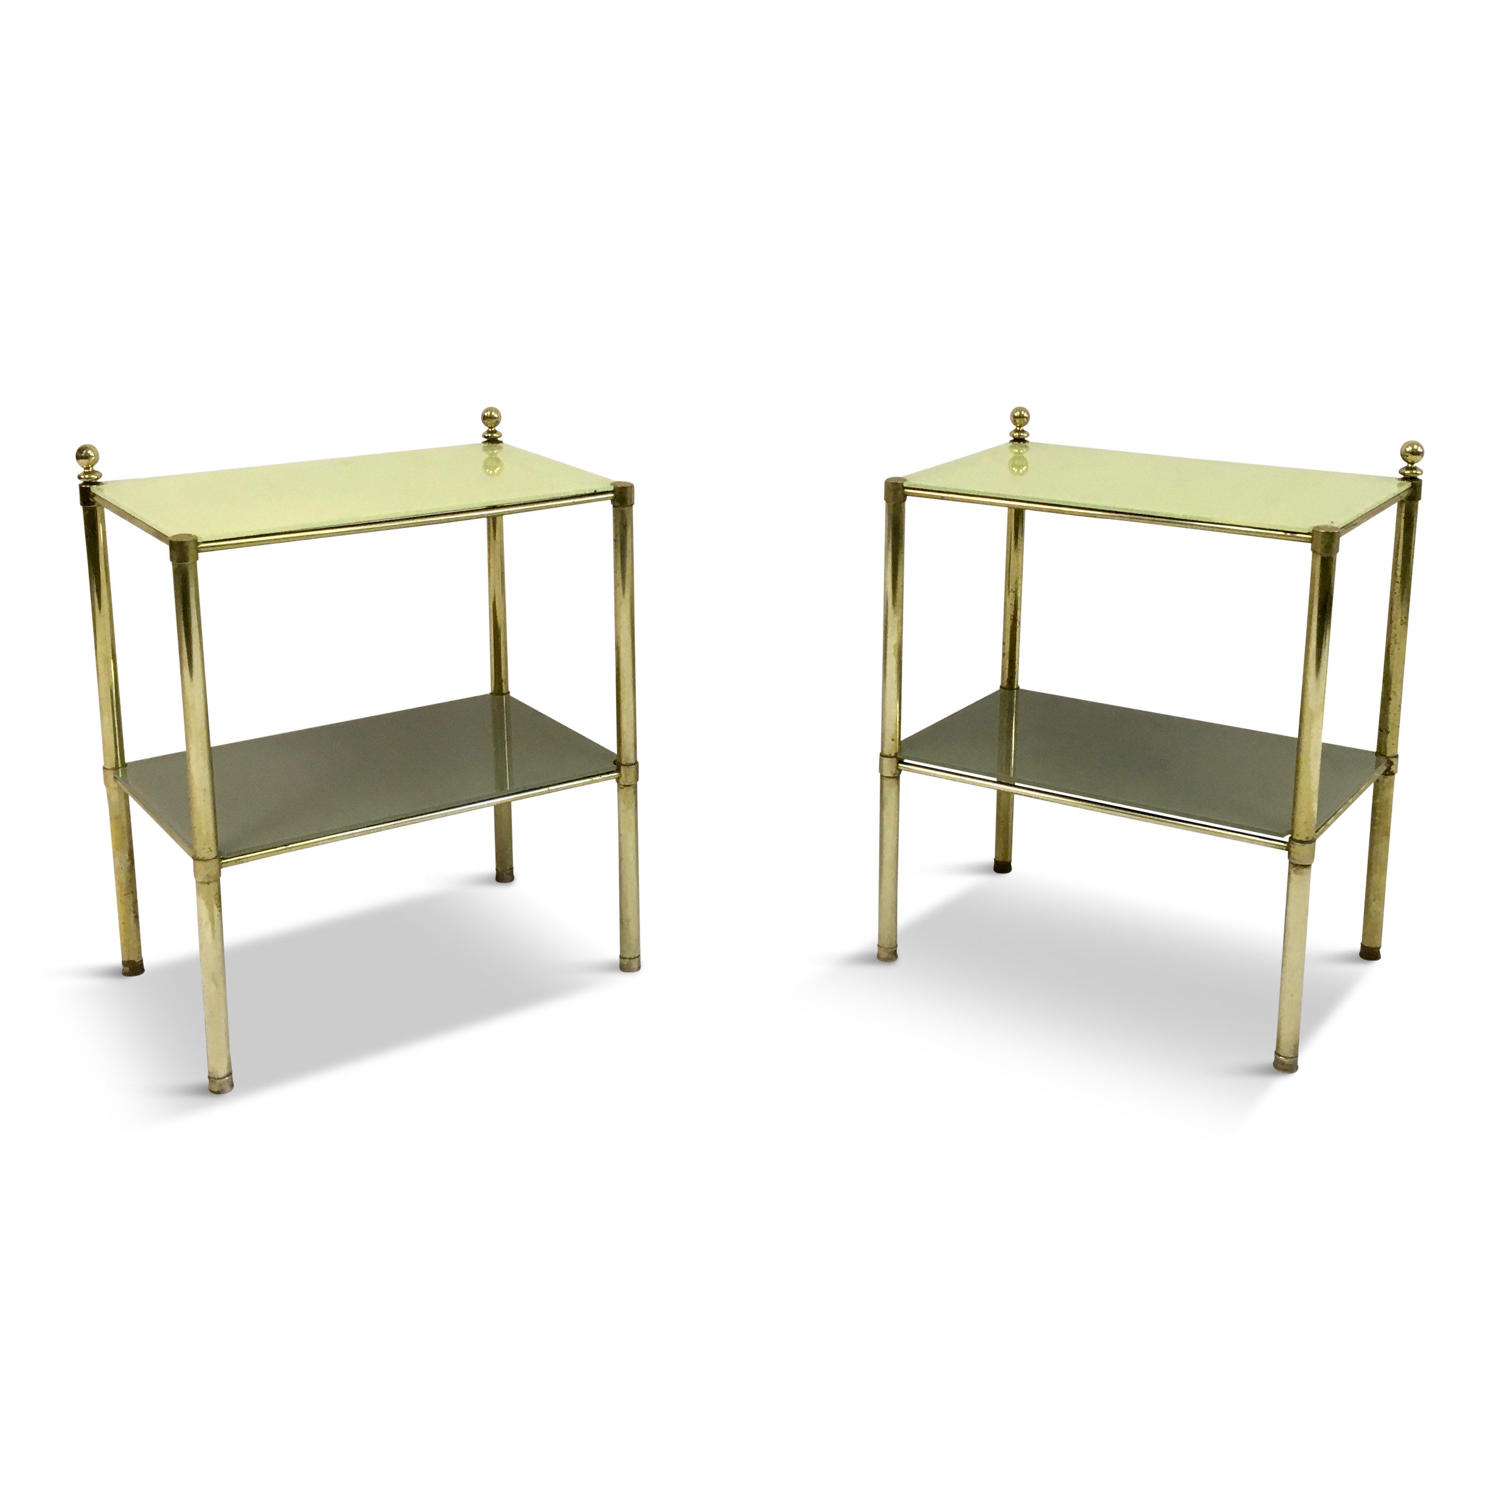 A pair of 1970s Italian brass side tables with yellow glass